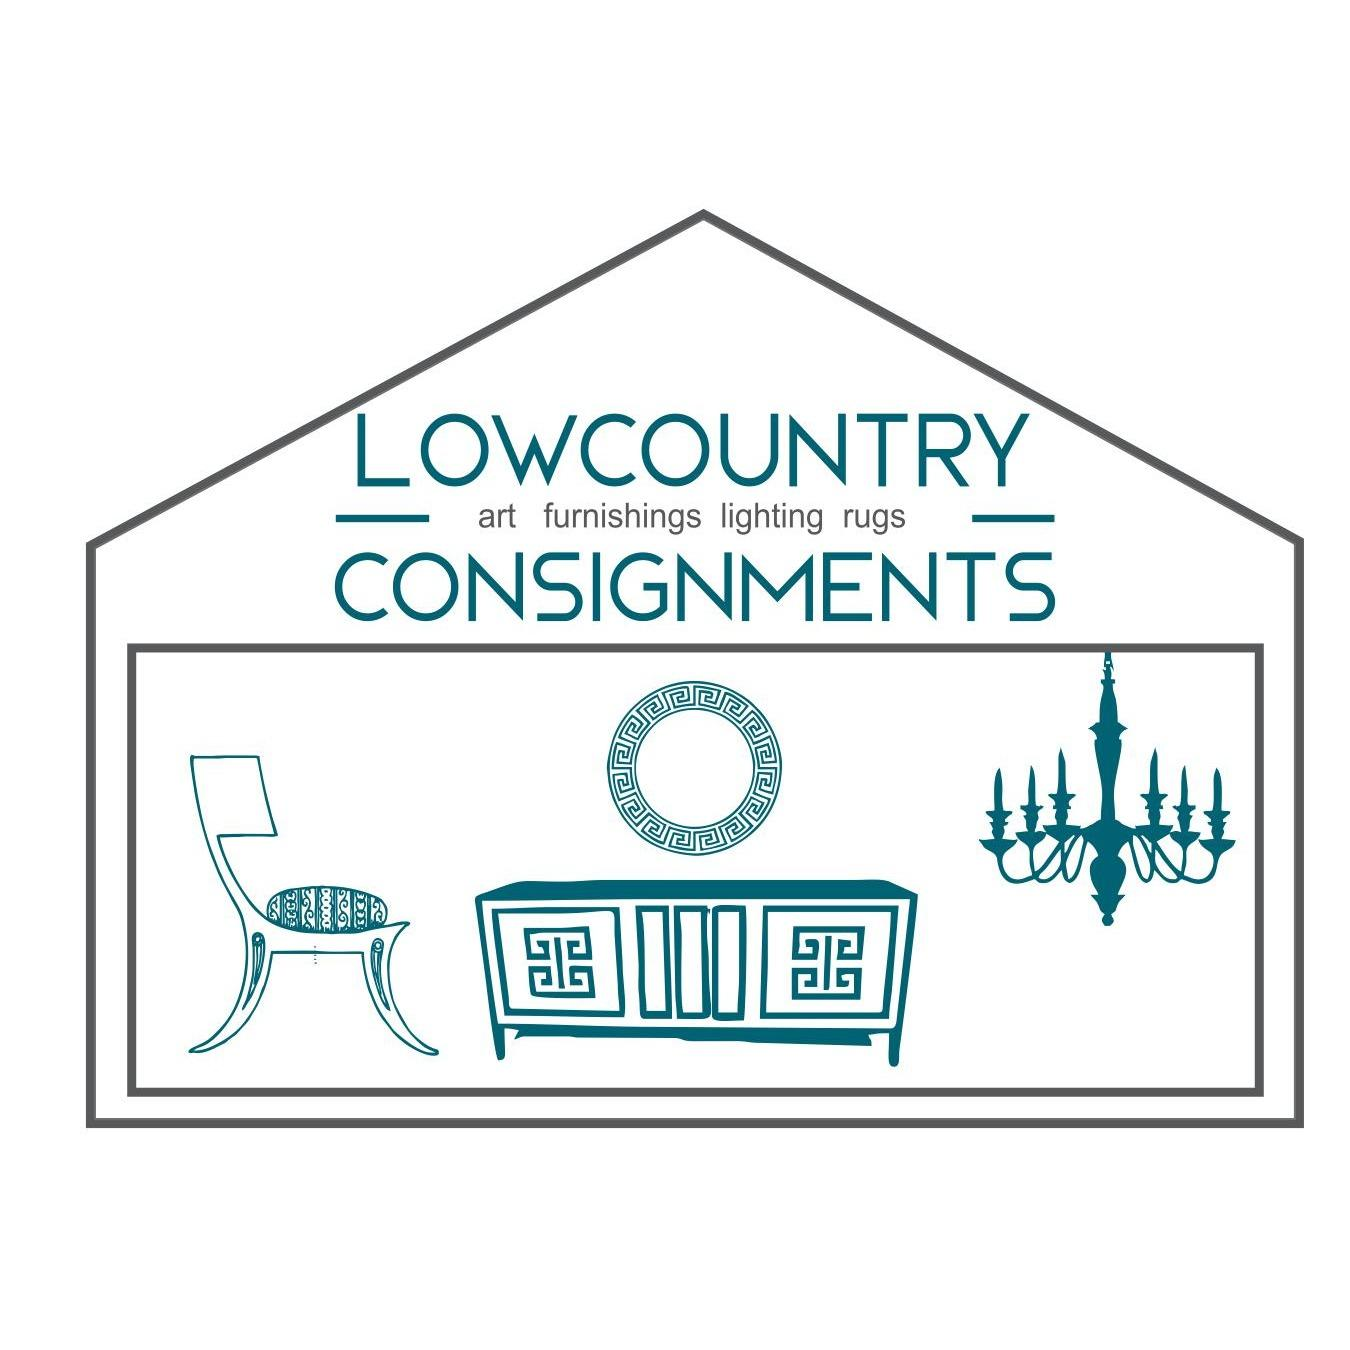 Lowcountry Consignments LLC image 1